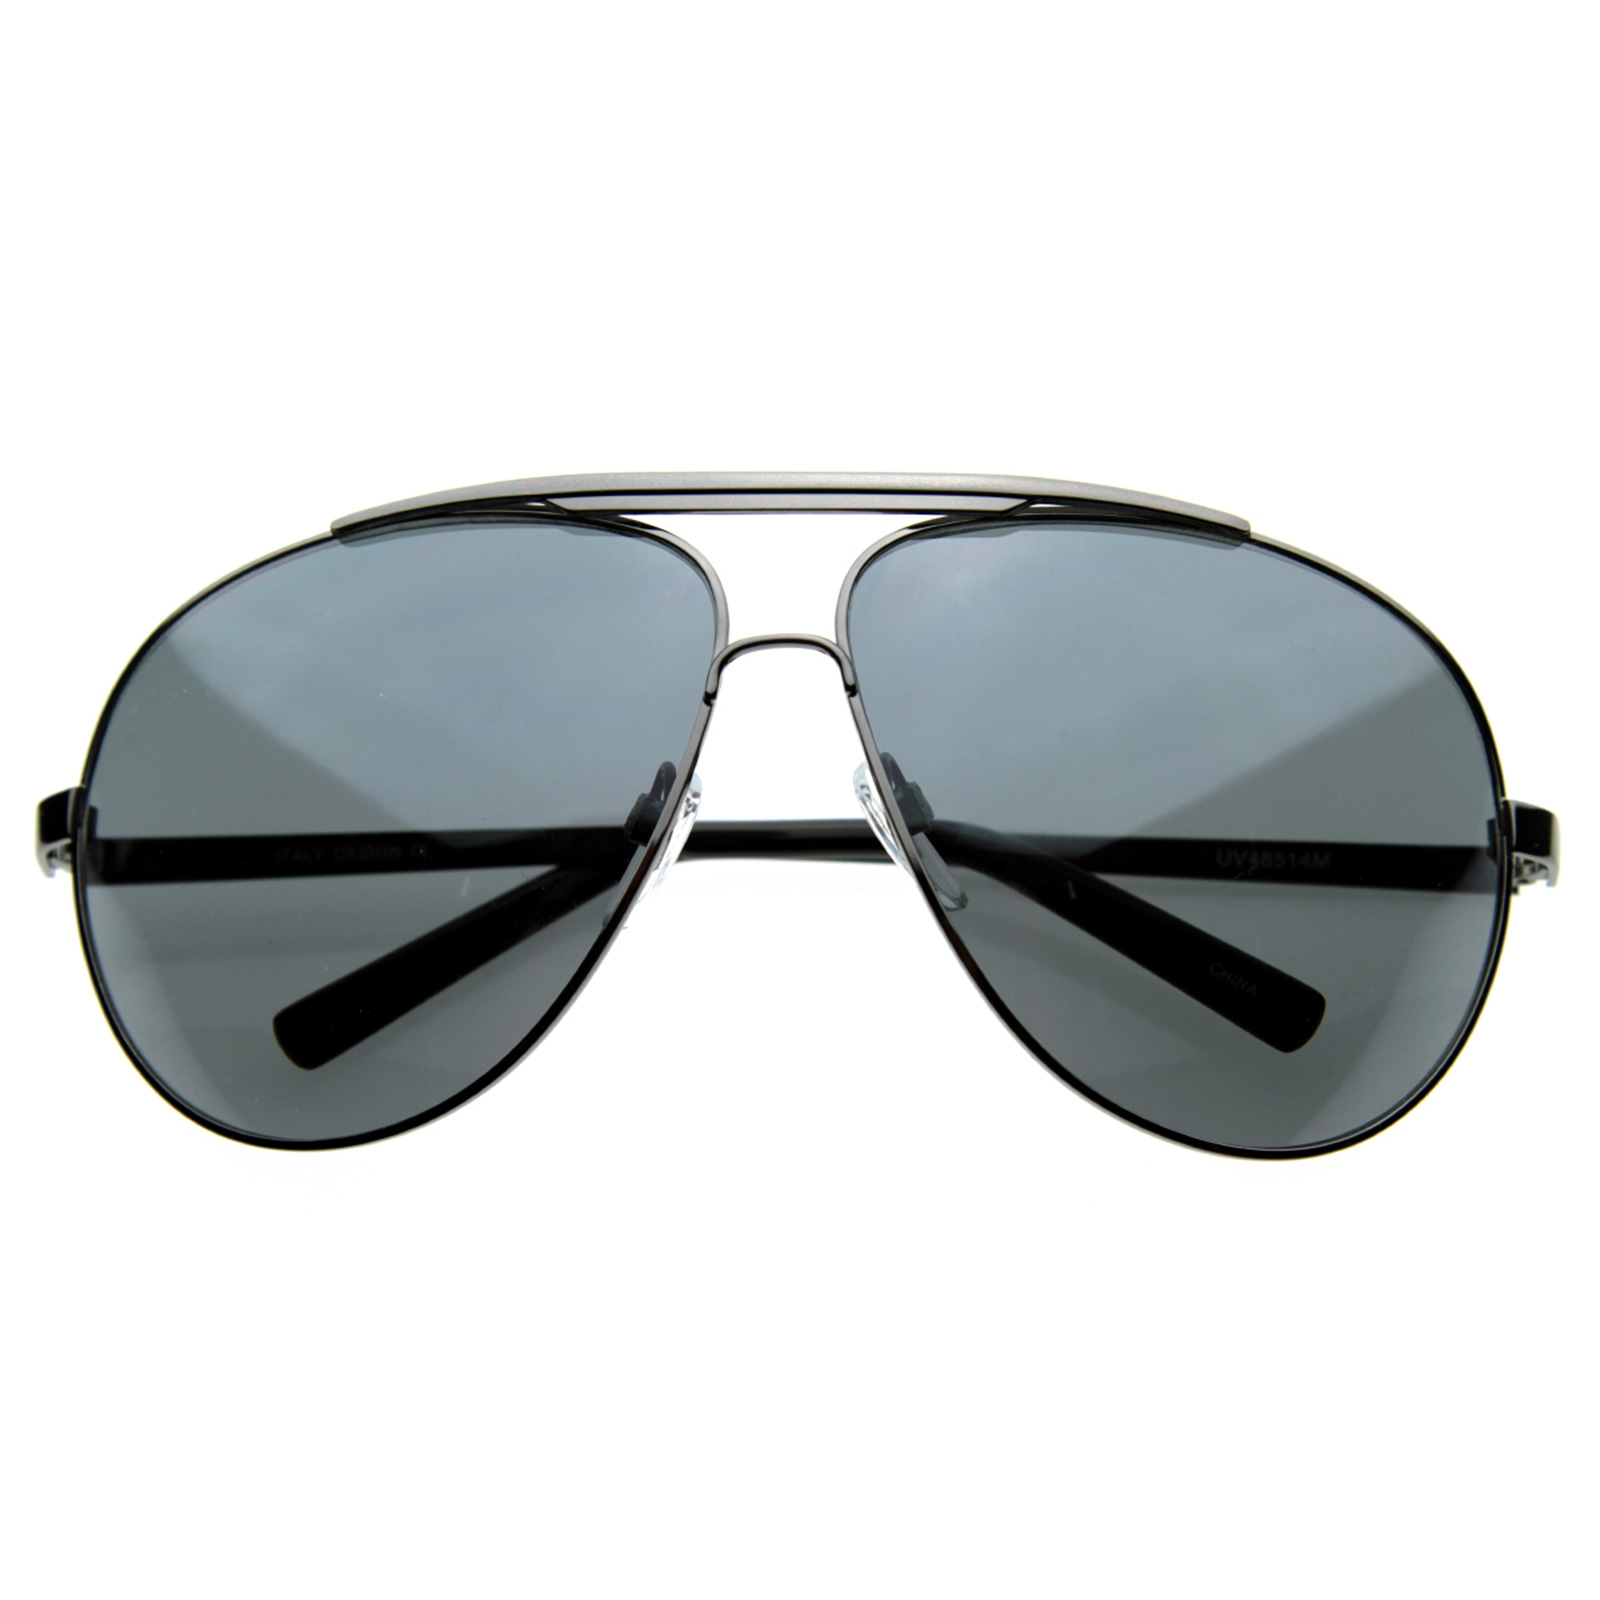 Extra Large Full Metal Thin Frame Oversize Mirrored Aviator Sunglasses